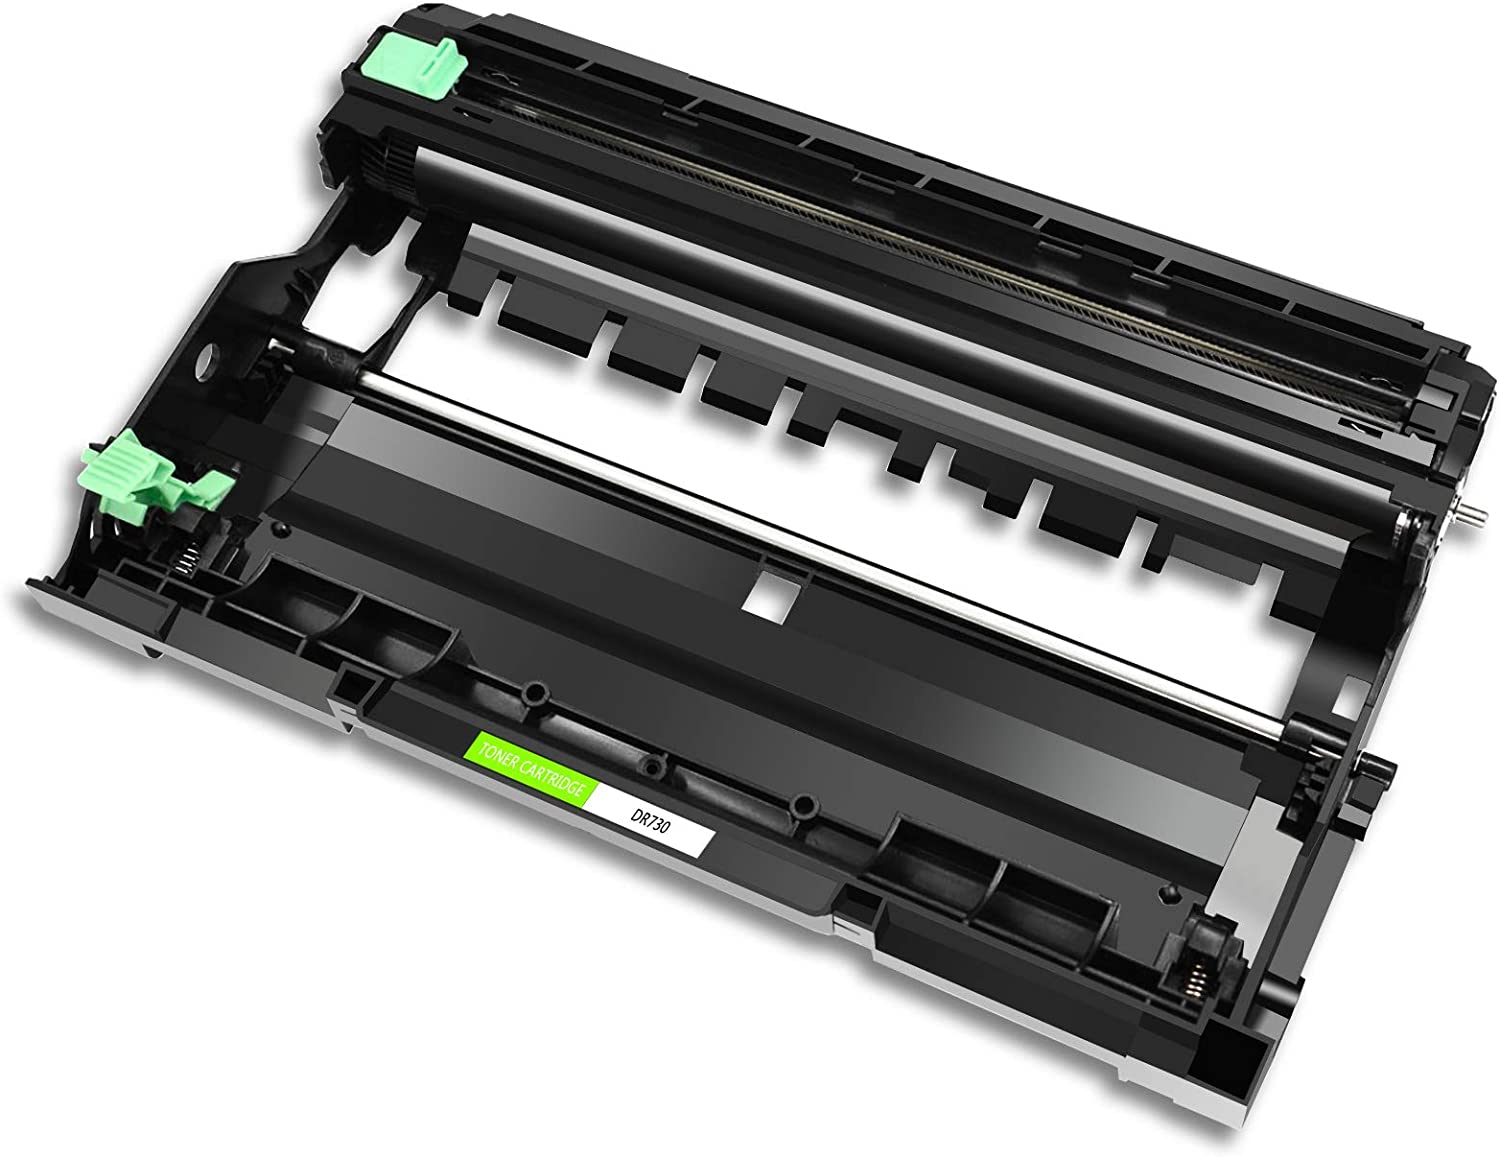 GREENCYCLE Compatible Drum Unit Replacement for Brother DR730 DR 730 to use with HL-L2350DW HL-L2370DW HL-L2390DW HL-L2395DW DCP-L2550DW MFC-L2730DW MFC-L2750DWXL Printer (10 Pack)